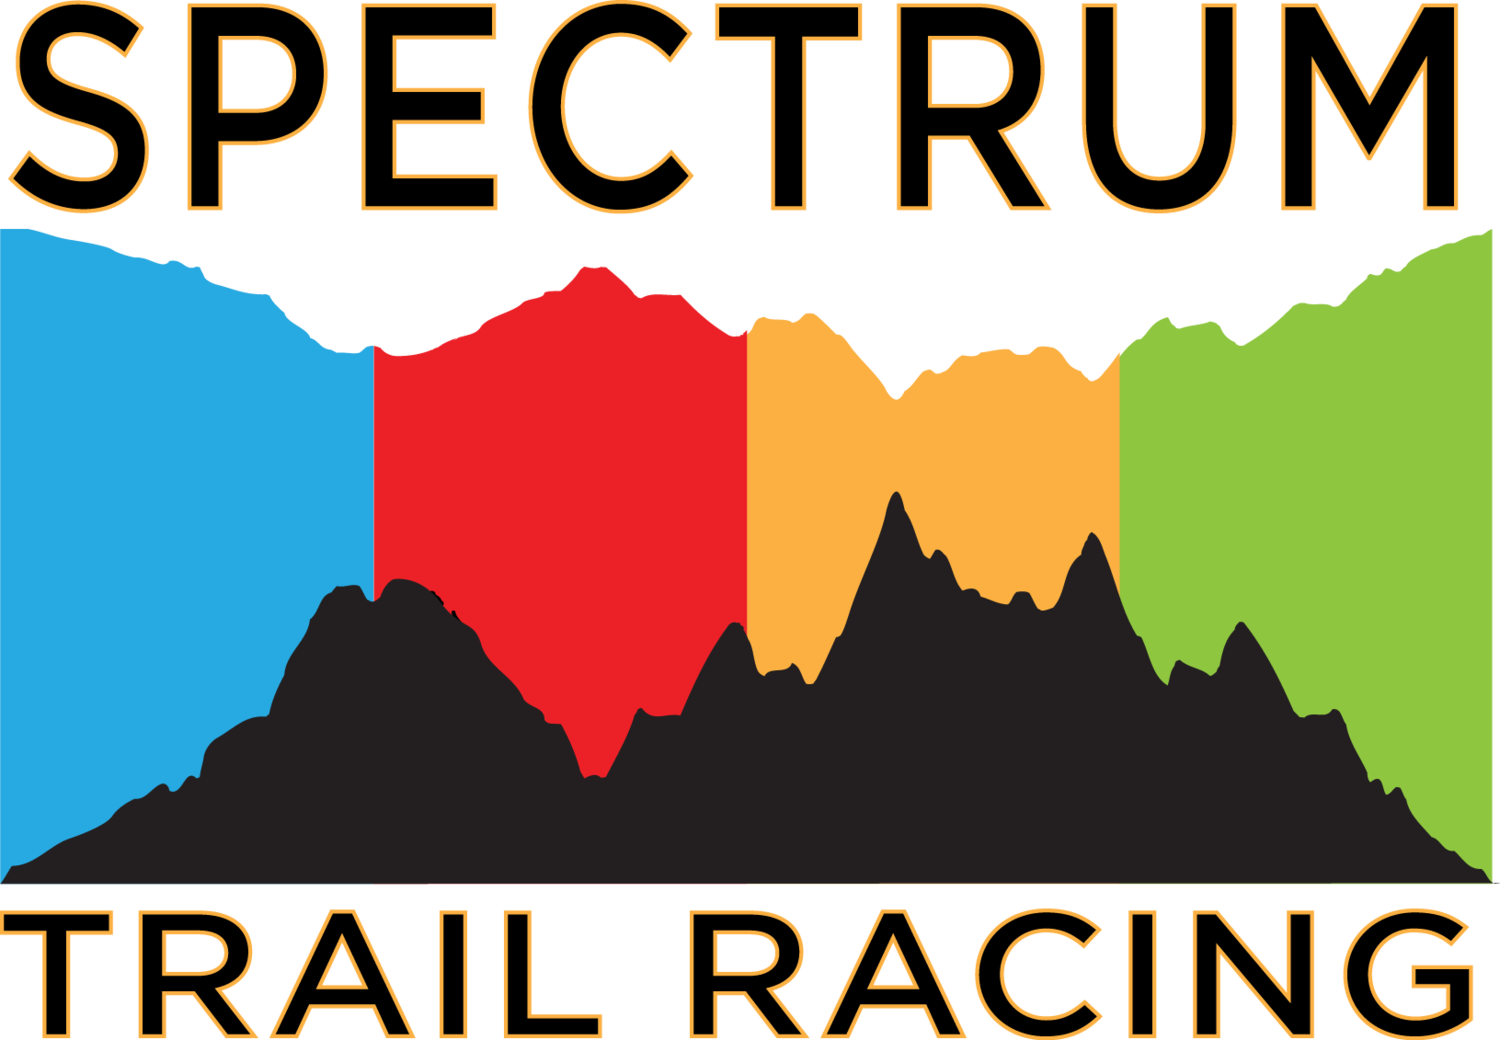 Spectrum Trail Racing